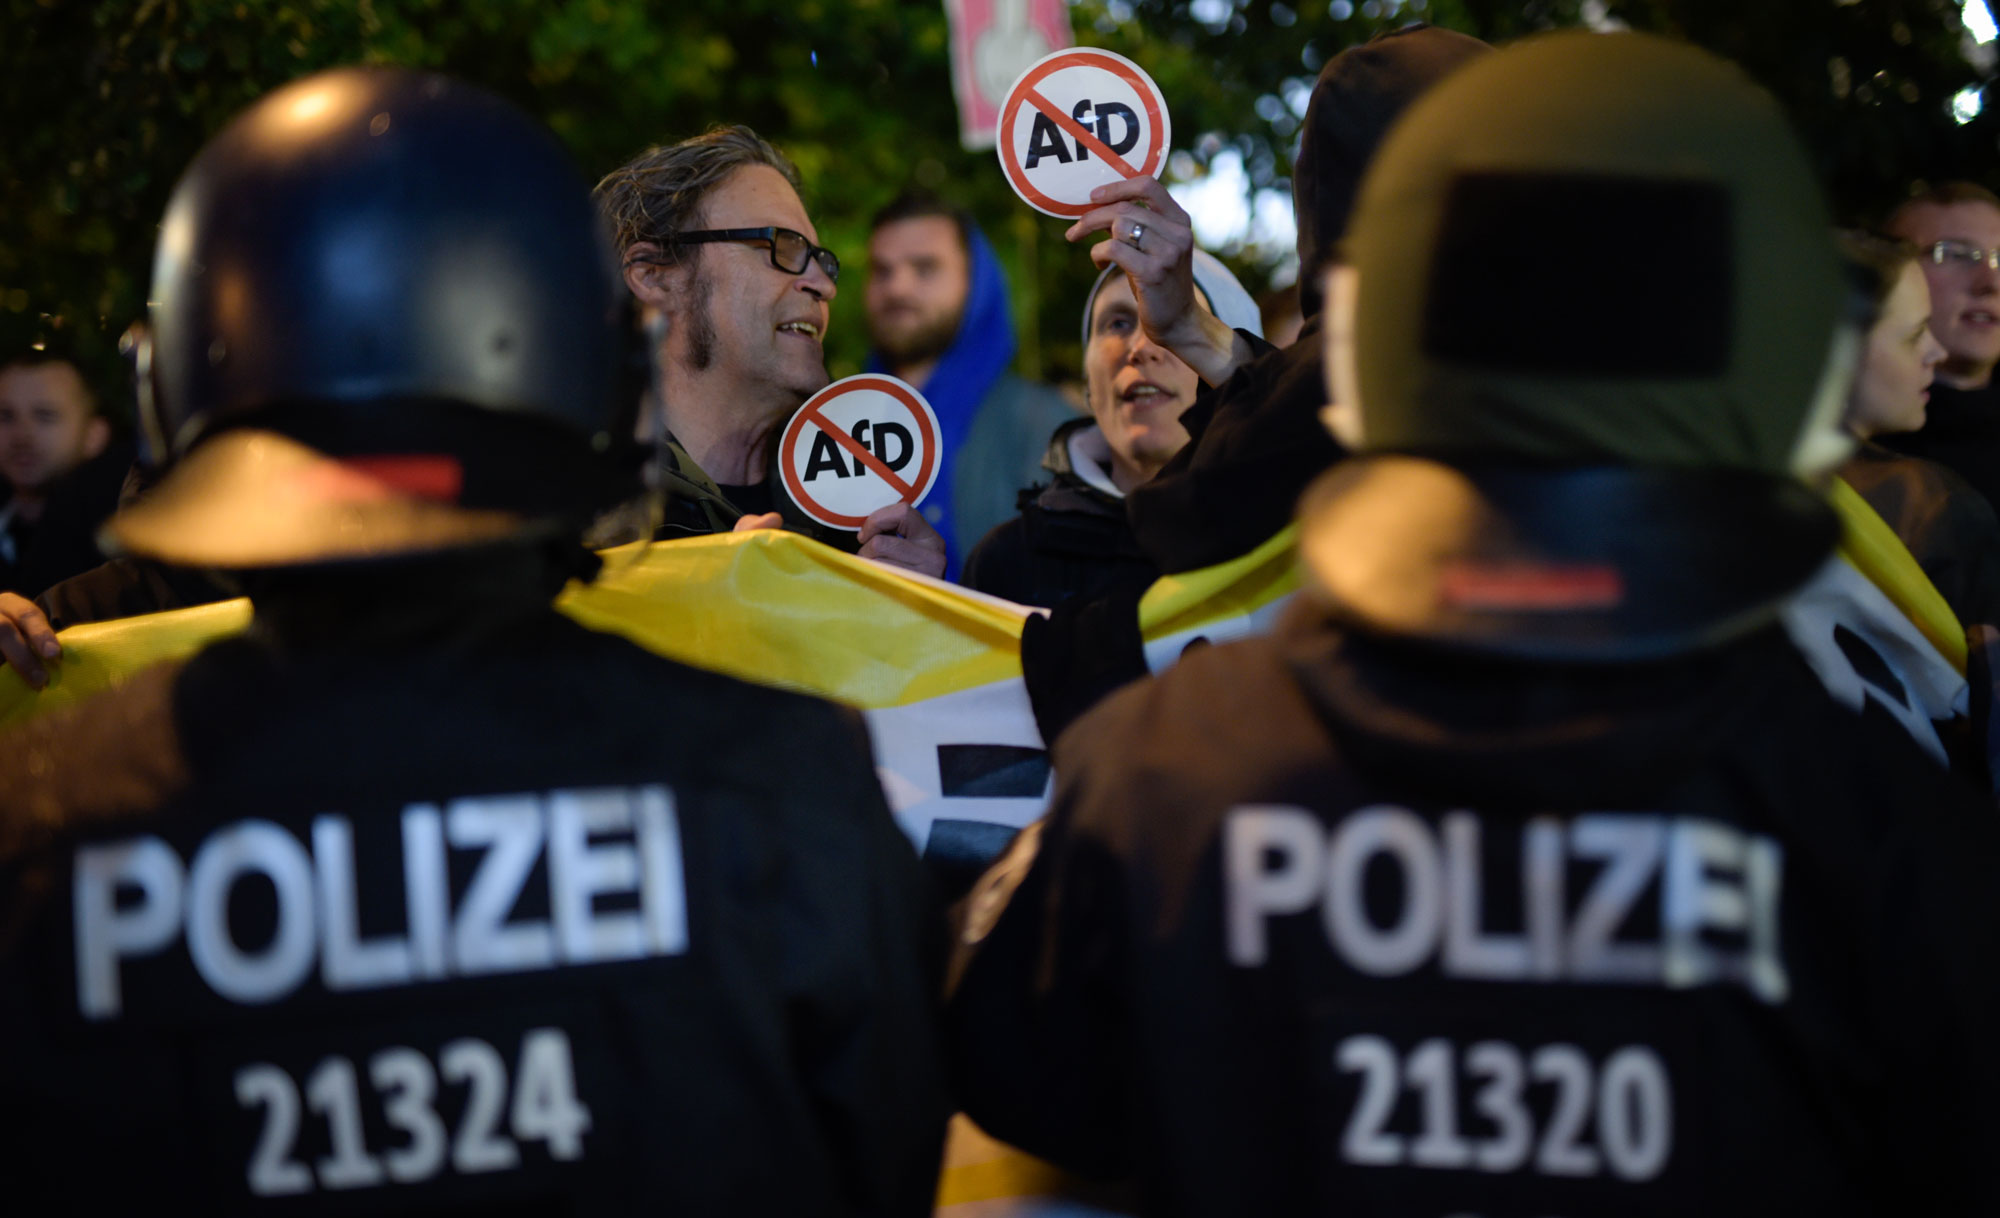 Opponents of the Alternative for Germany (AfD) protest after the German federal elections. Photo by Jens Schlueter/Getty Images